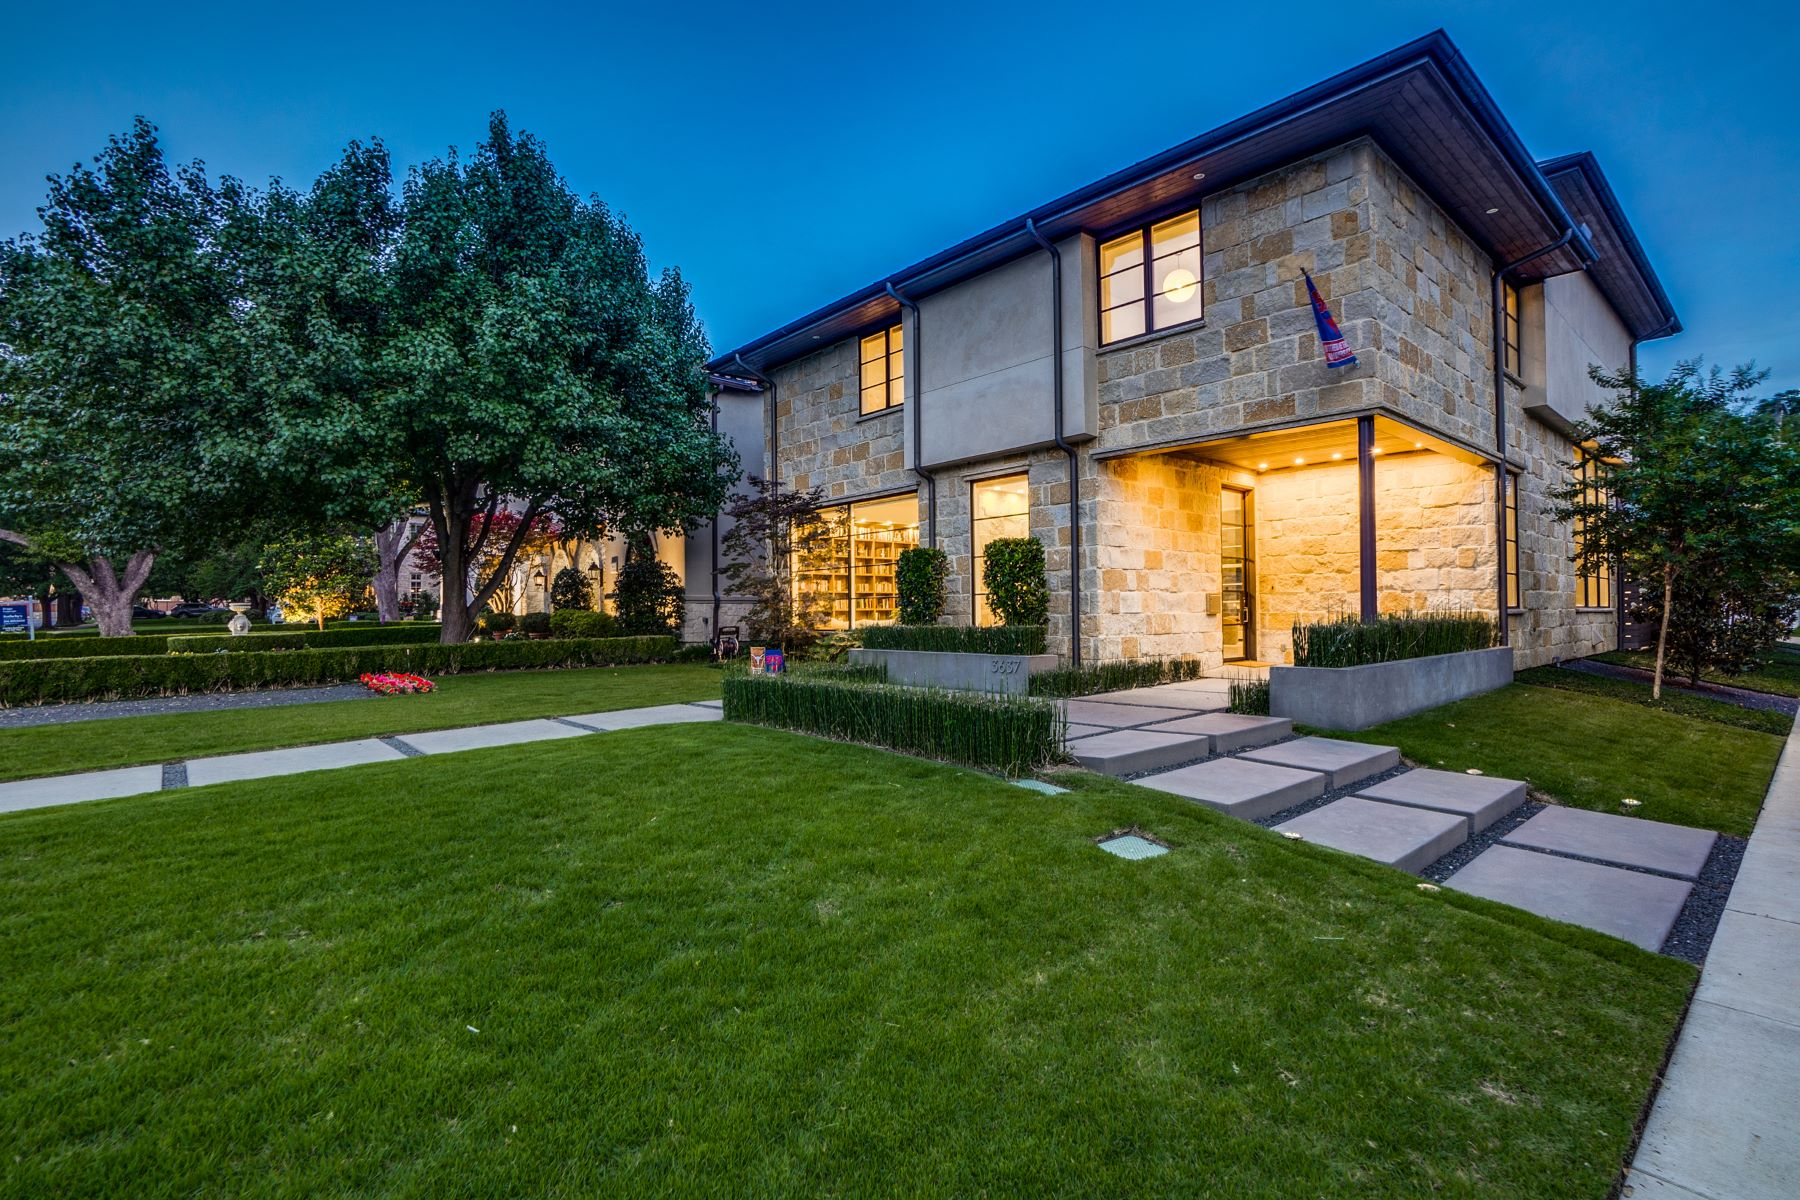 Single Family Homes for Sale at 3637 Shenandoah Street, Highland Park, TX, 75205 3637 Shenandoah Street Highland Park, Texas 75205 United States